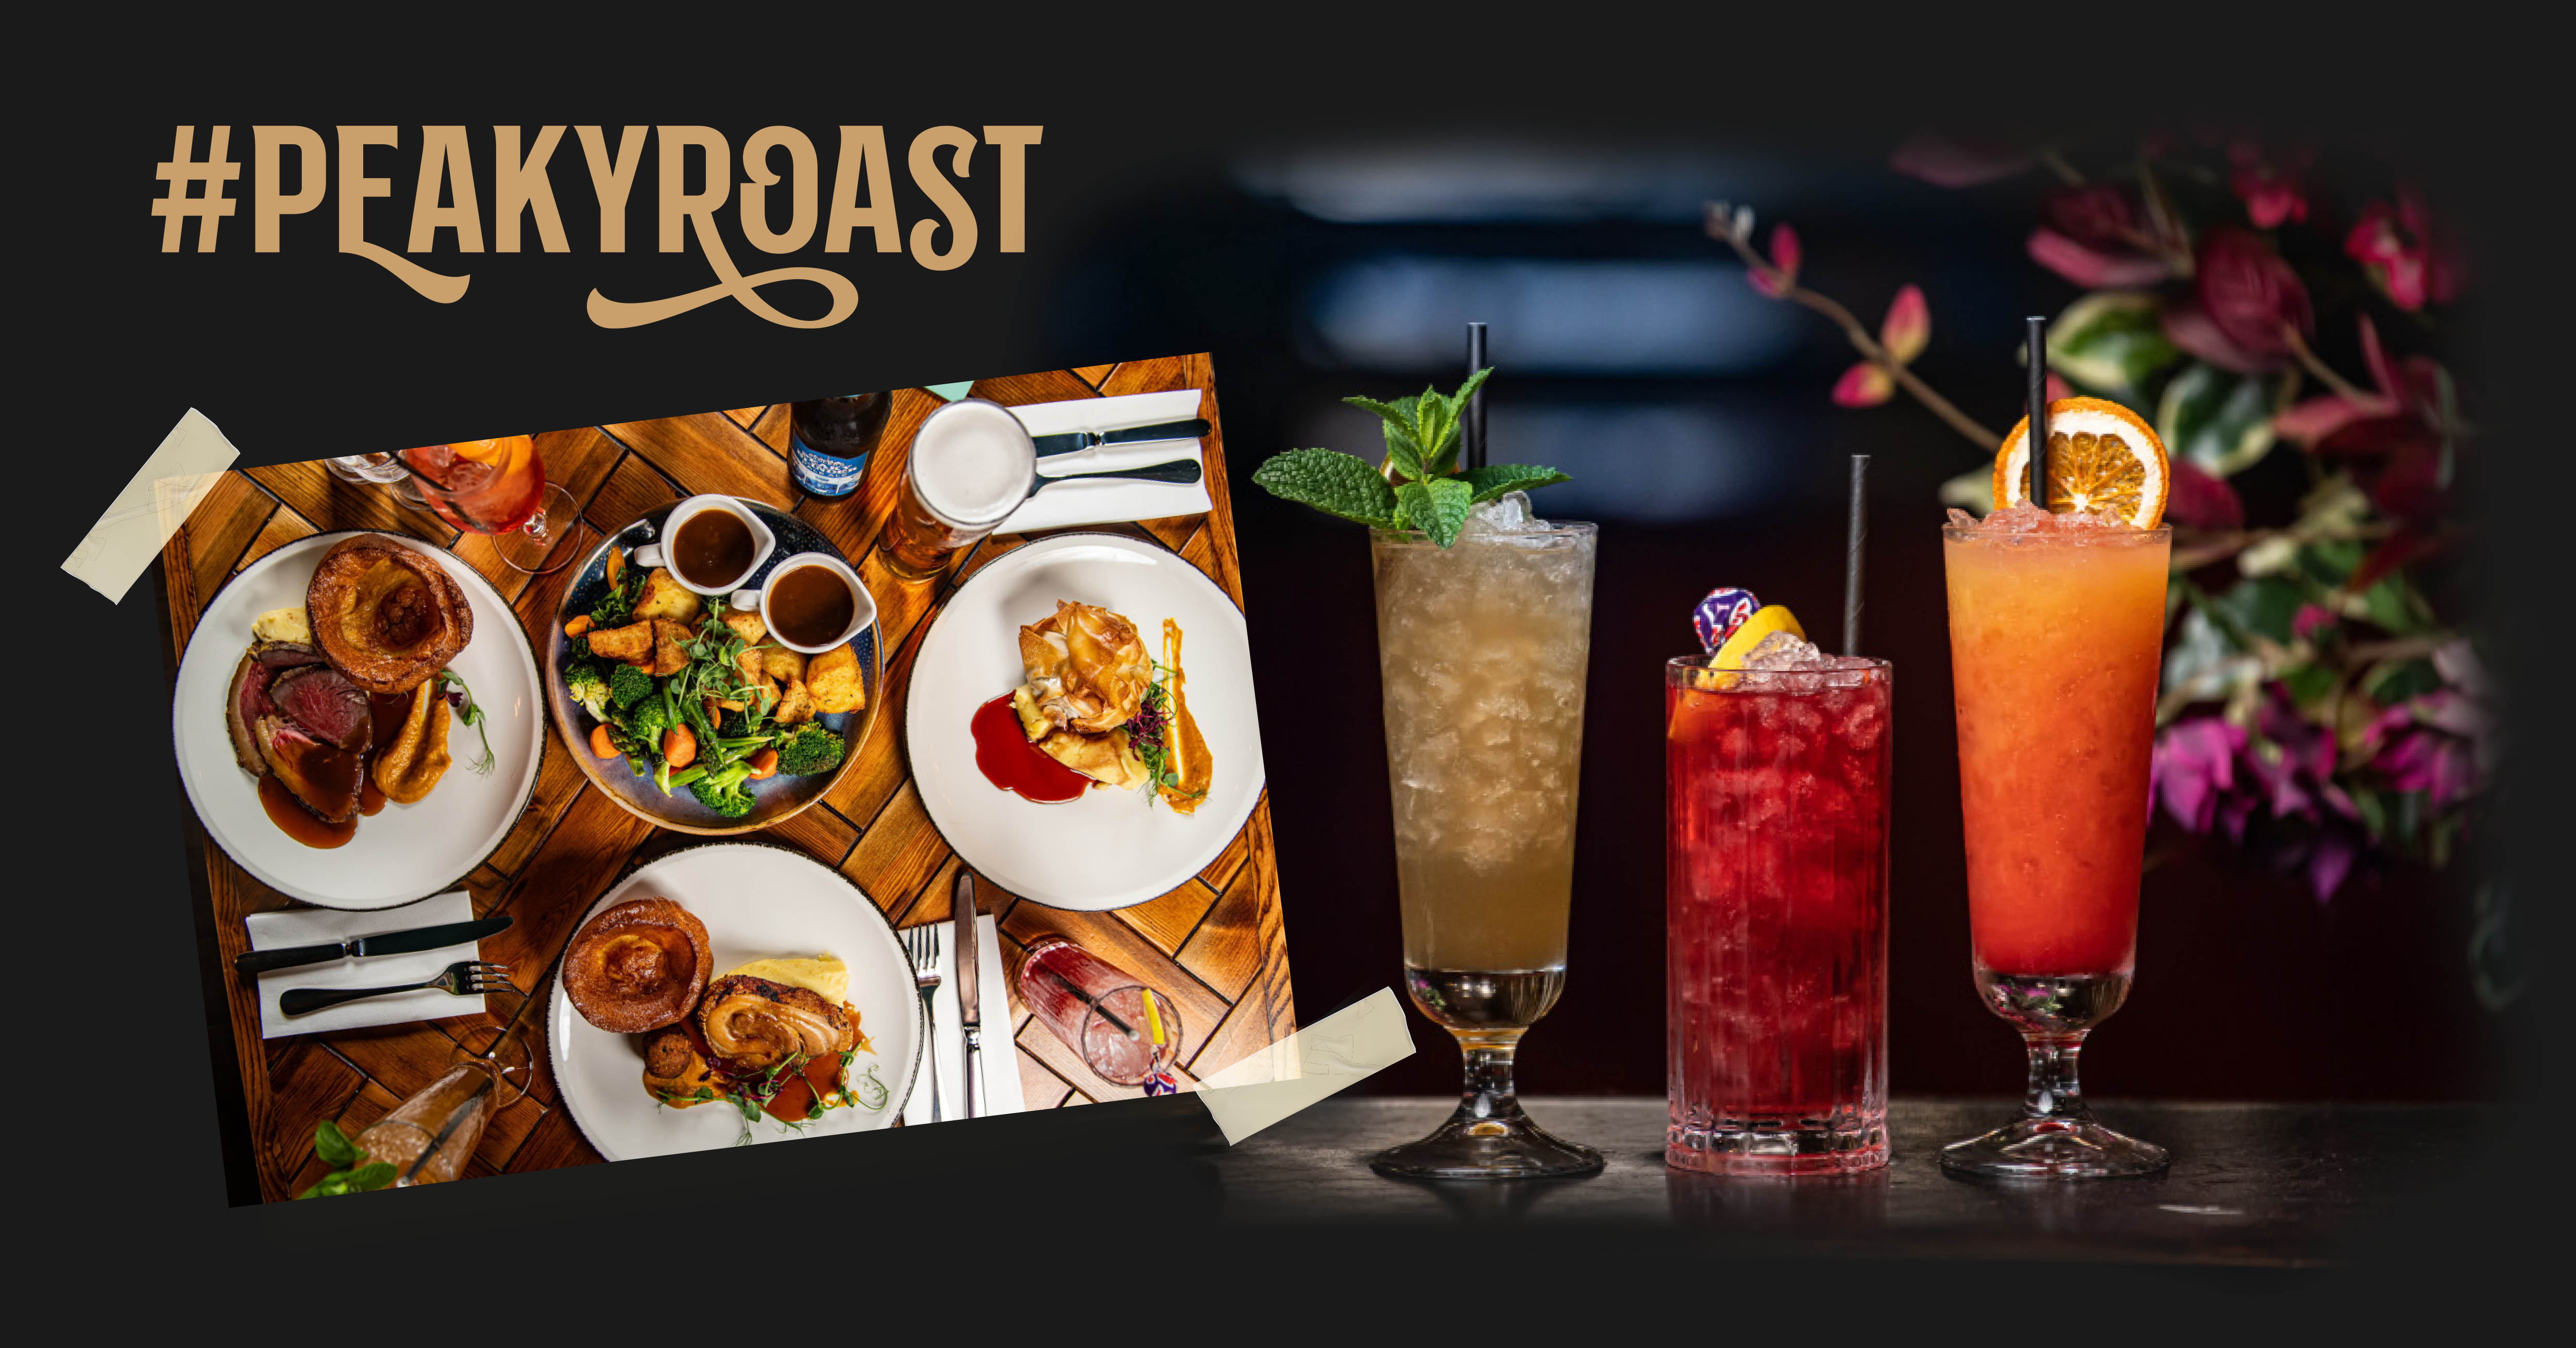 Peaky Blinders Manchester Bottomless Roast